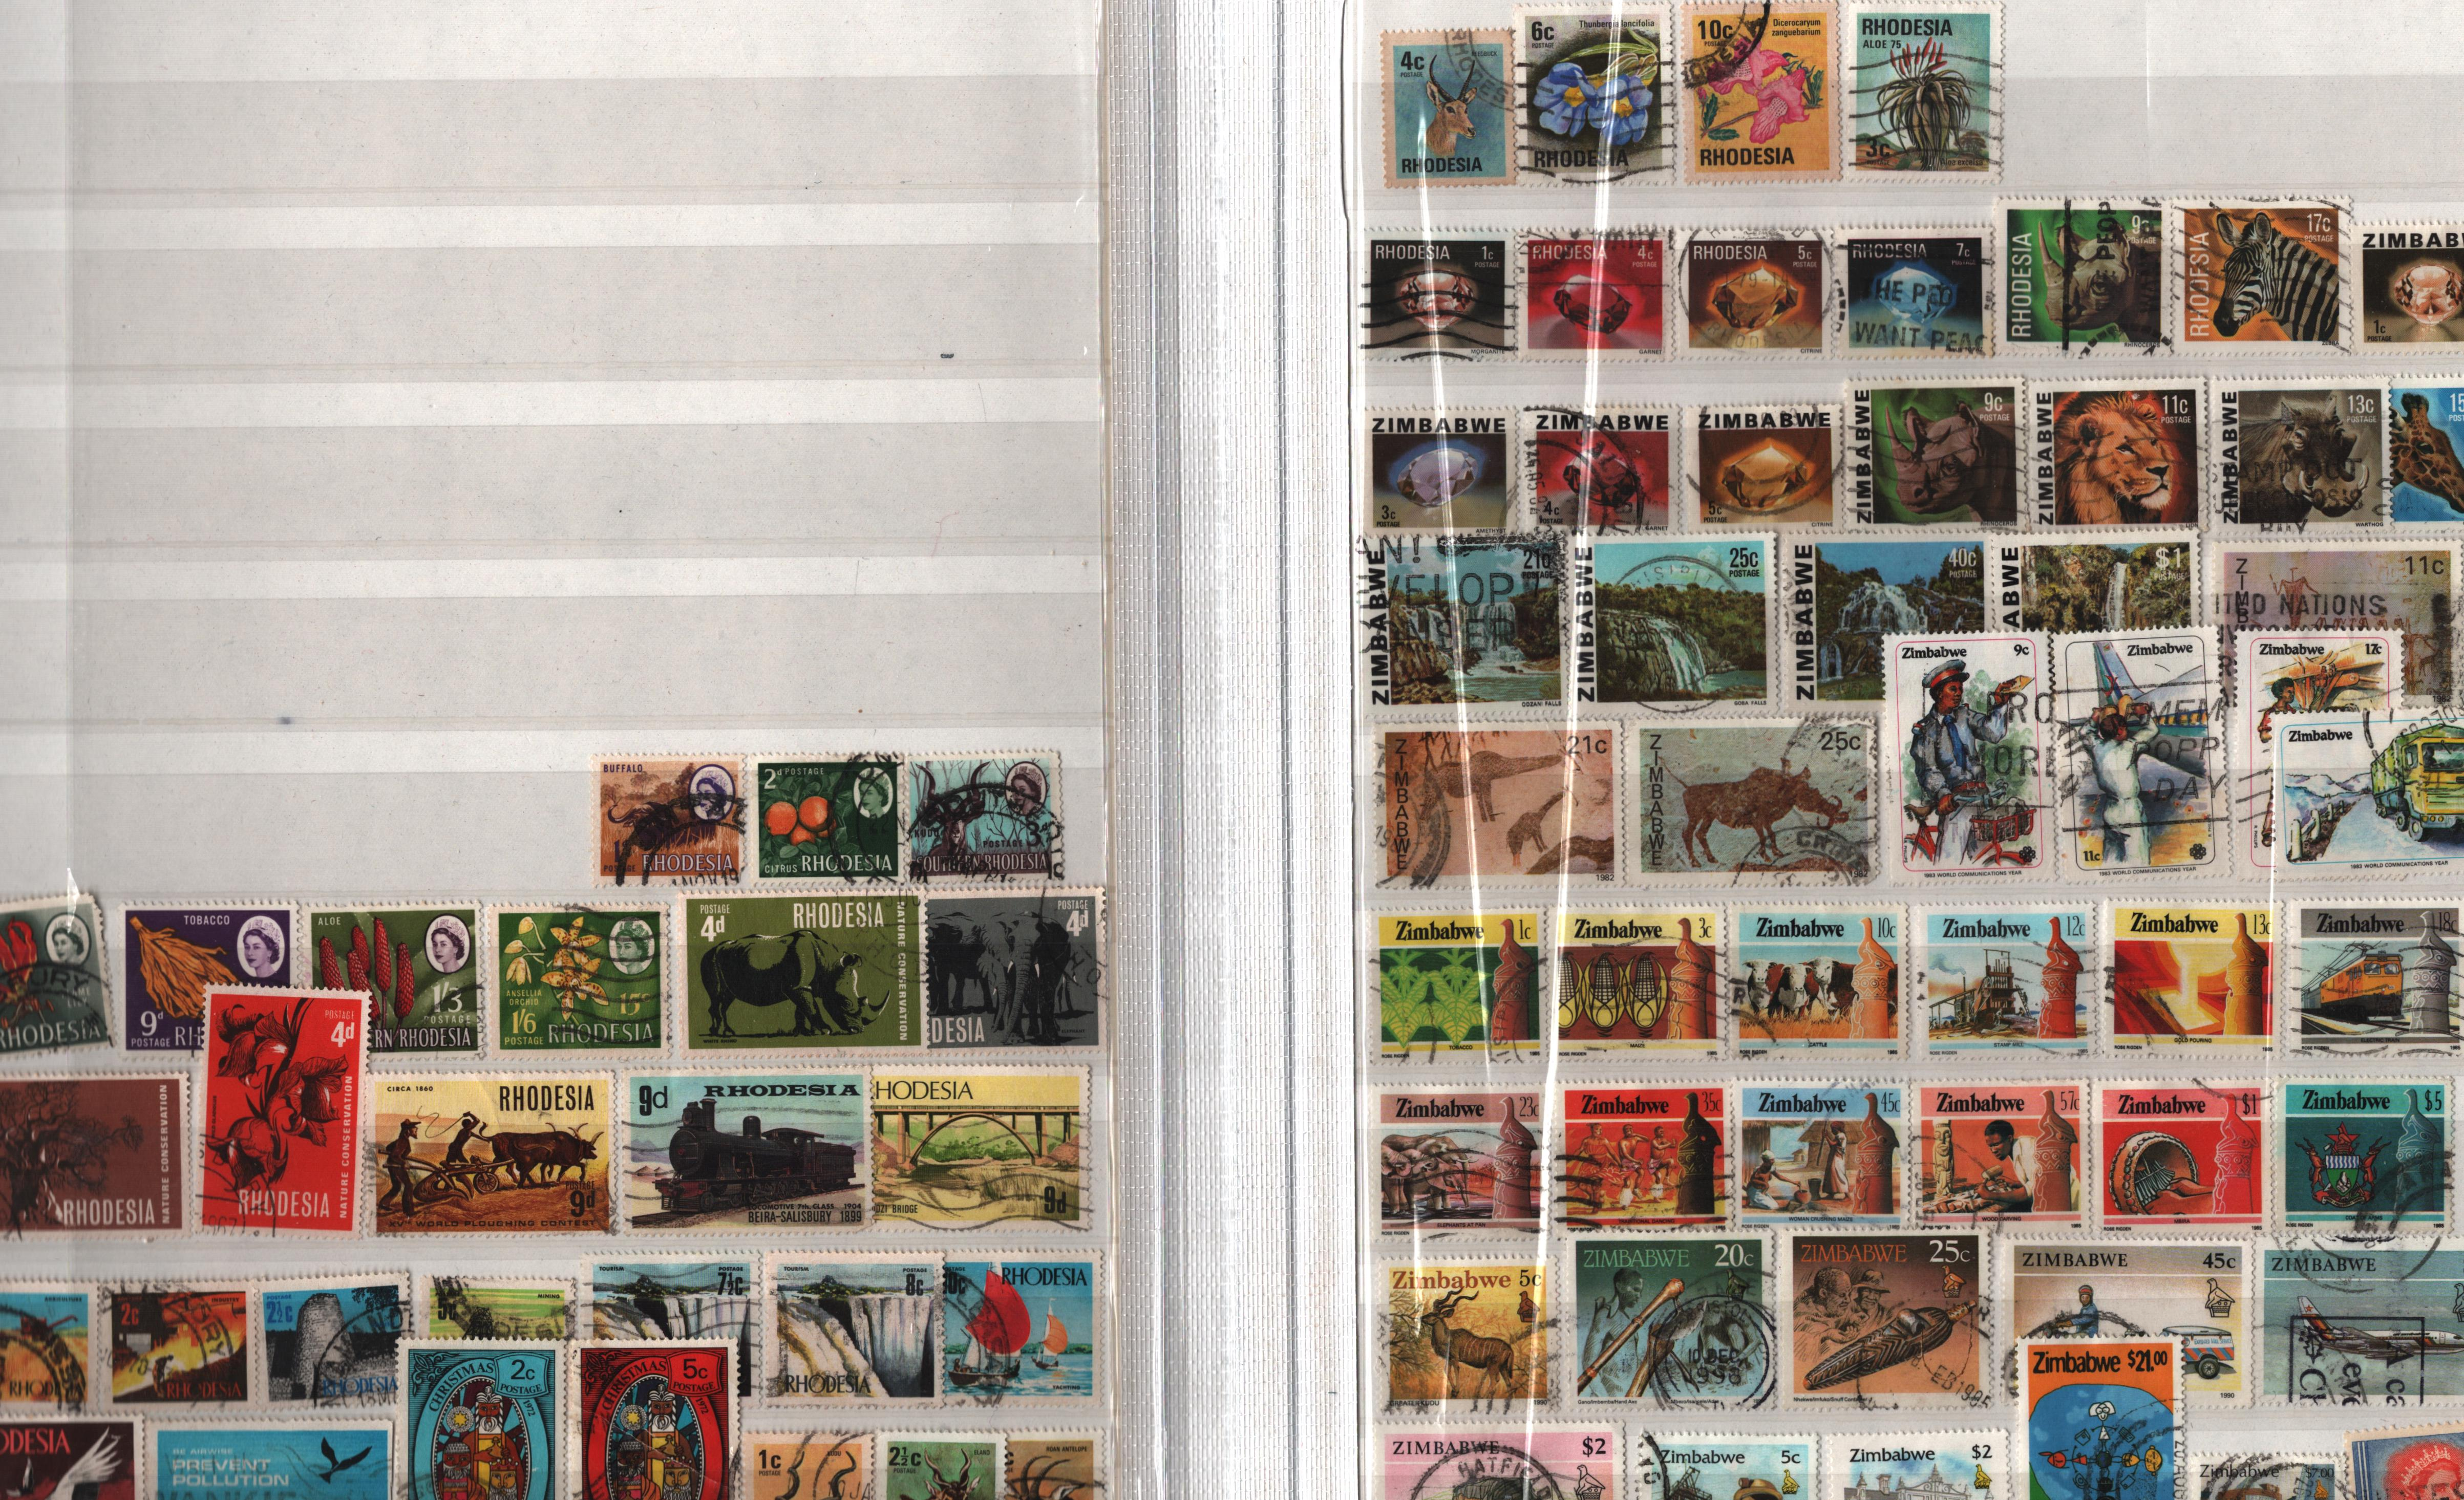 BCW stamp collection on 32 pages in stock book. Includes NZ, Nigeria, St Vincent, Zambia and many - Image 2 of 3